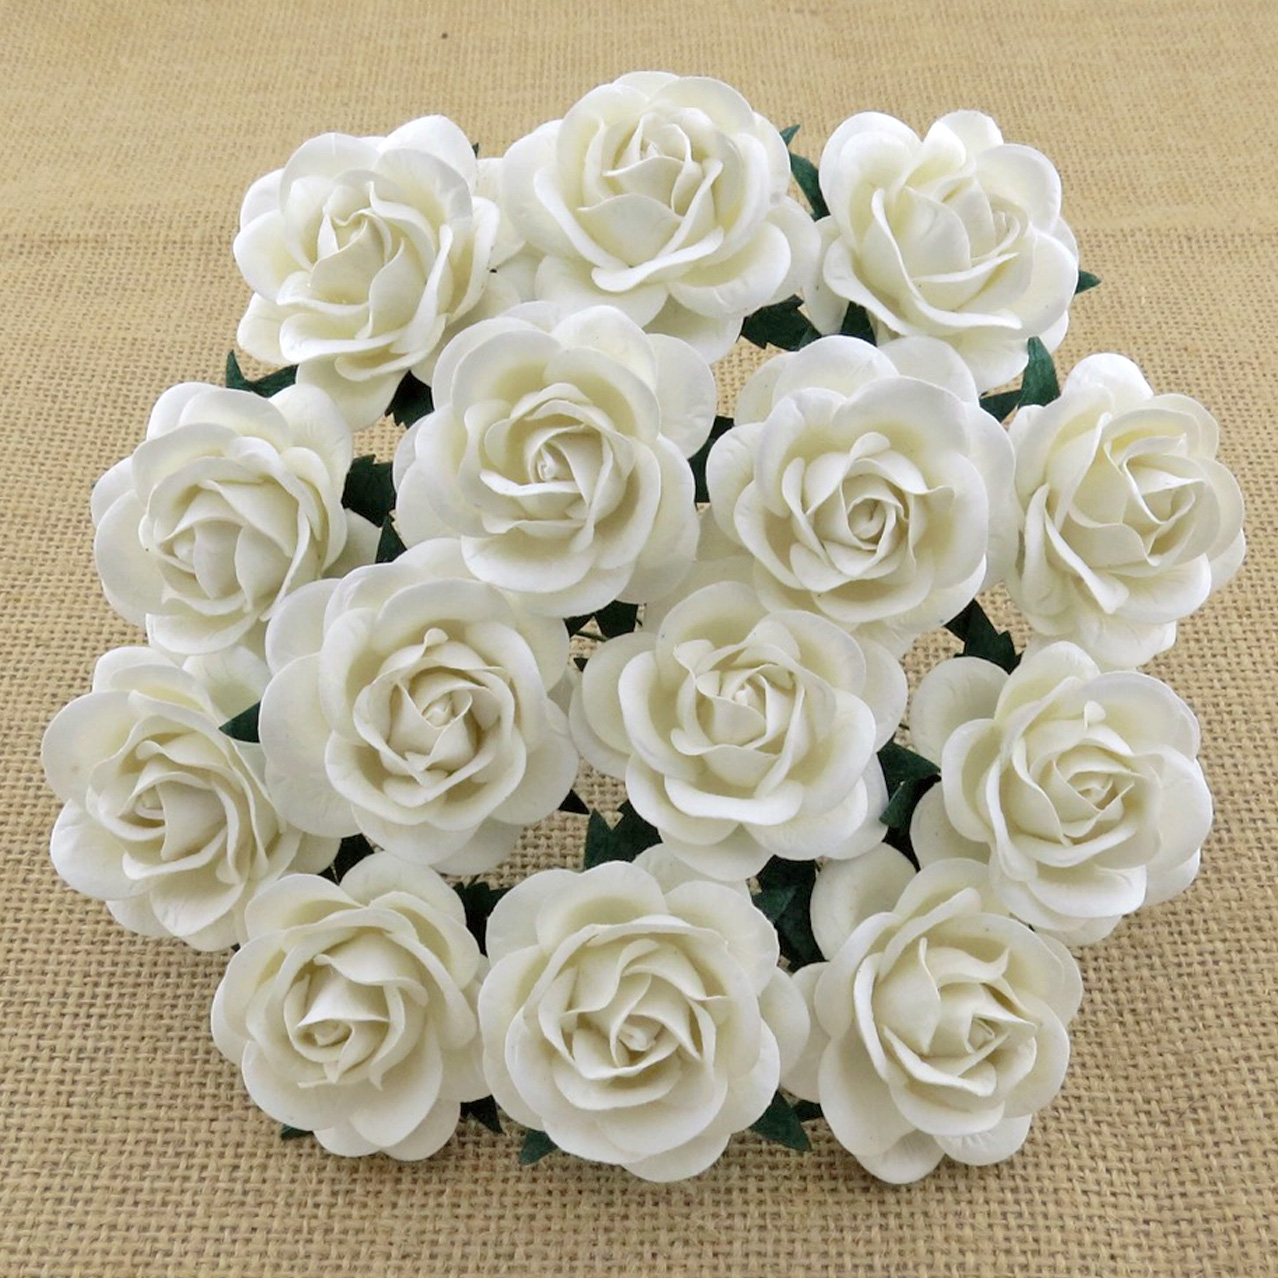 50 WHITE MULBERRY PAPER TRELLIS ROSES